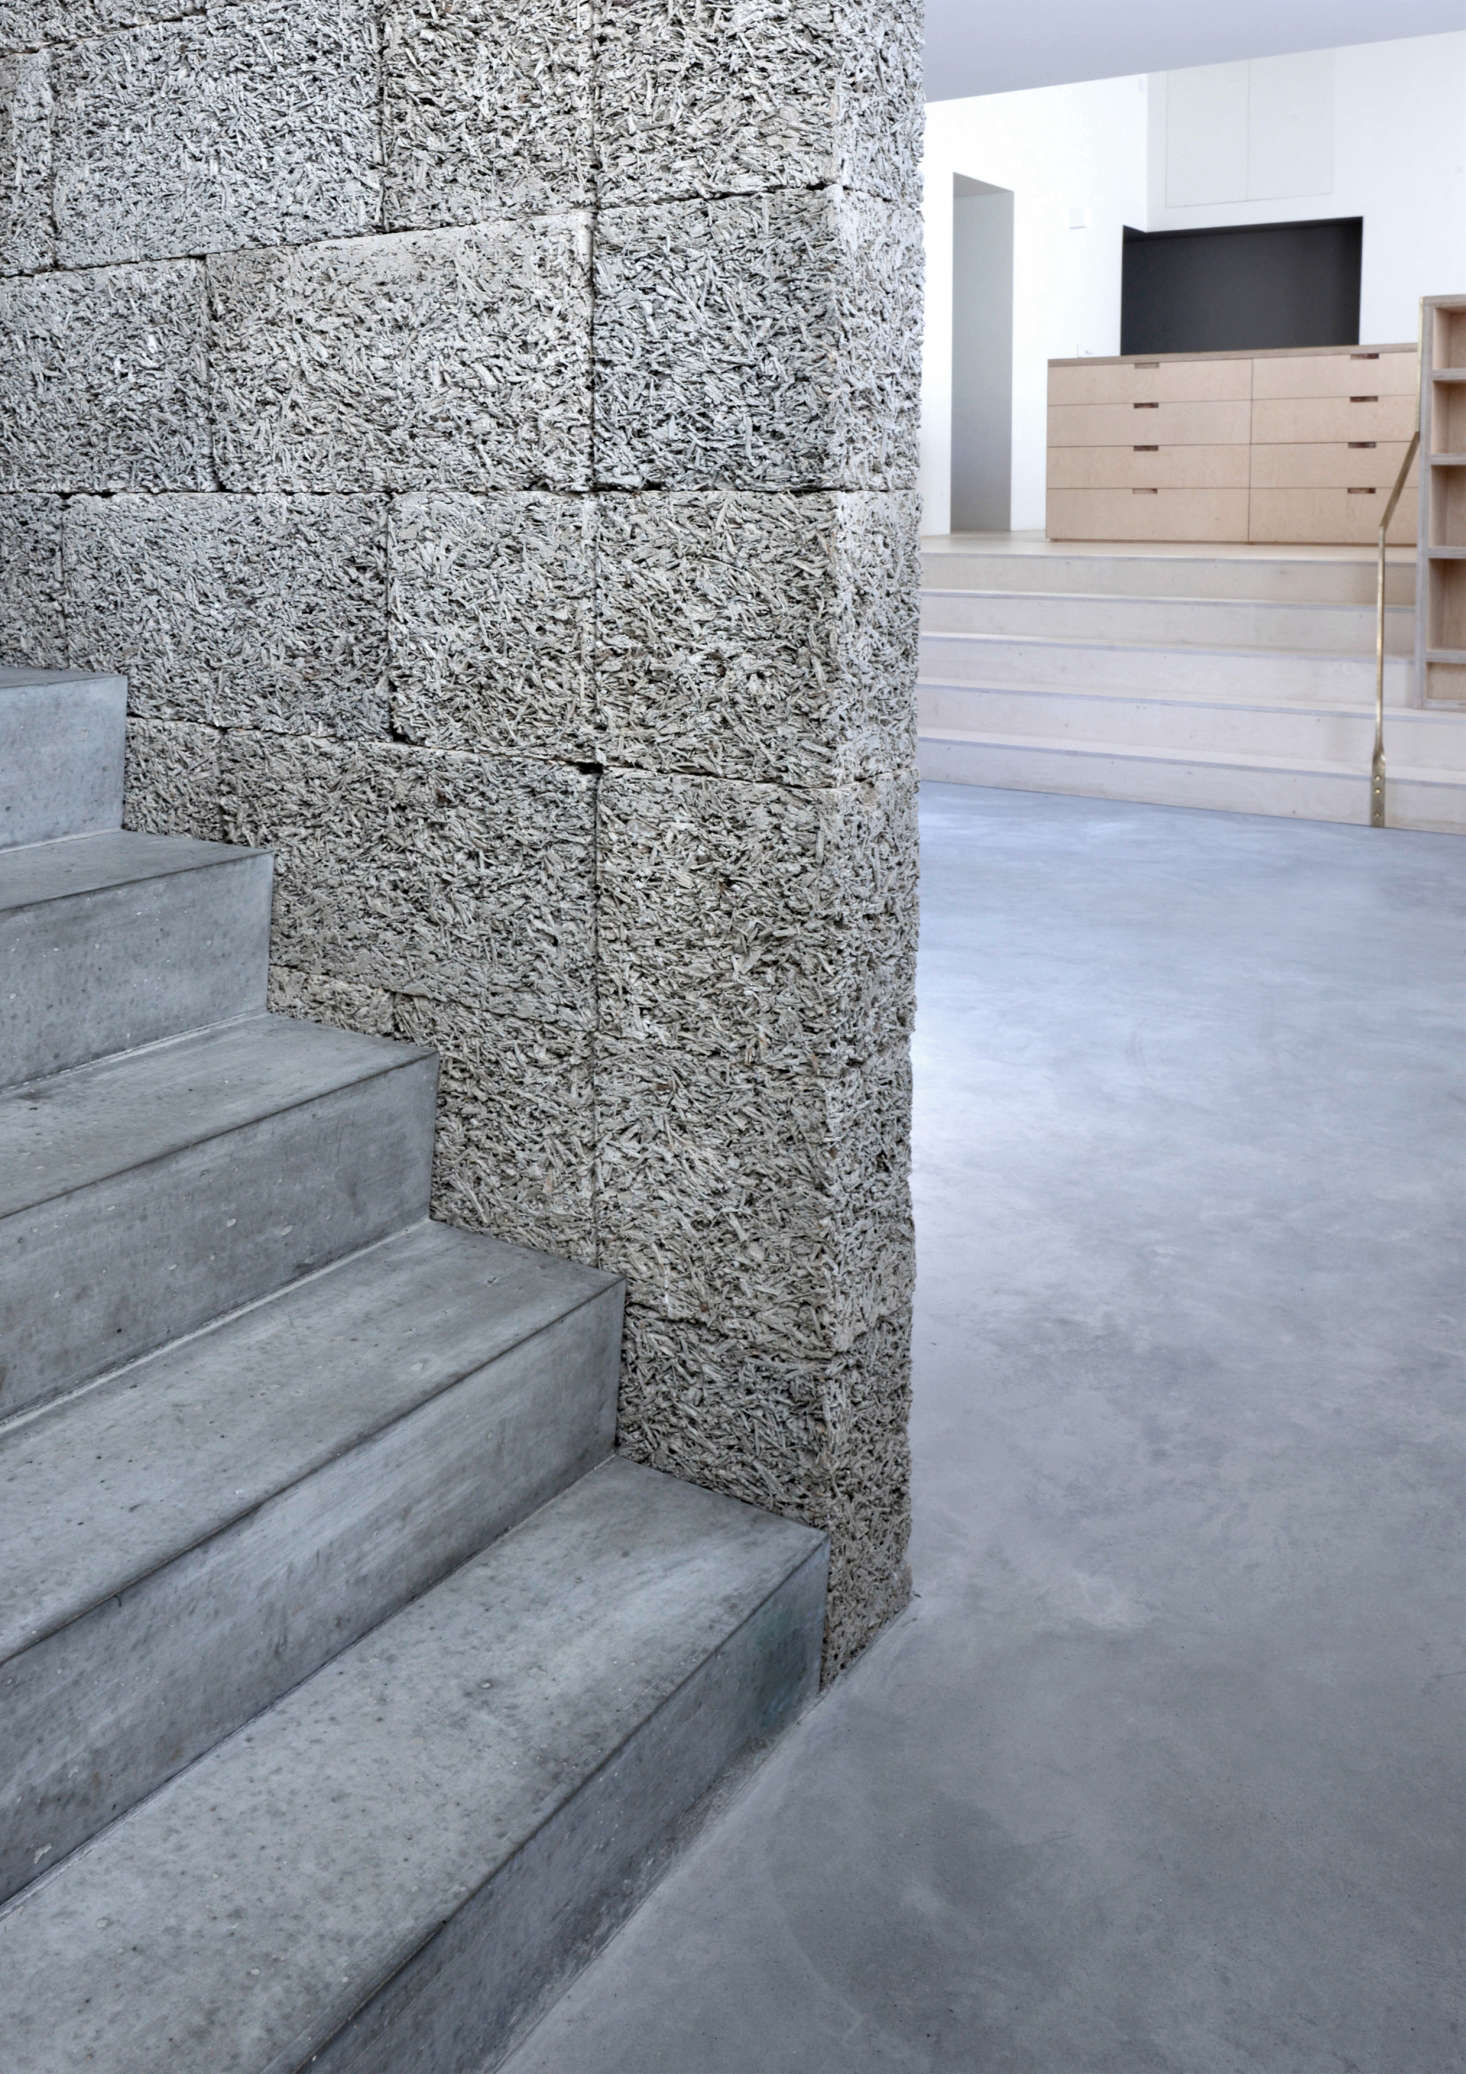 The stairwall is made of dry-stacked Durisol Wood-Cement Walling Units.